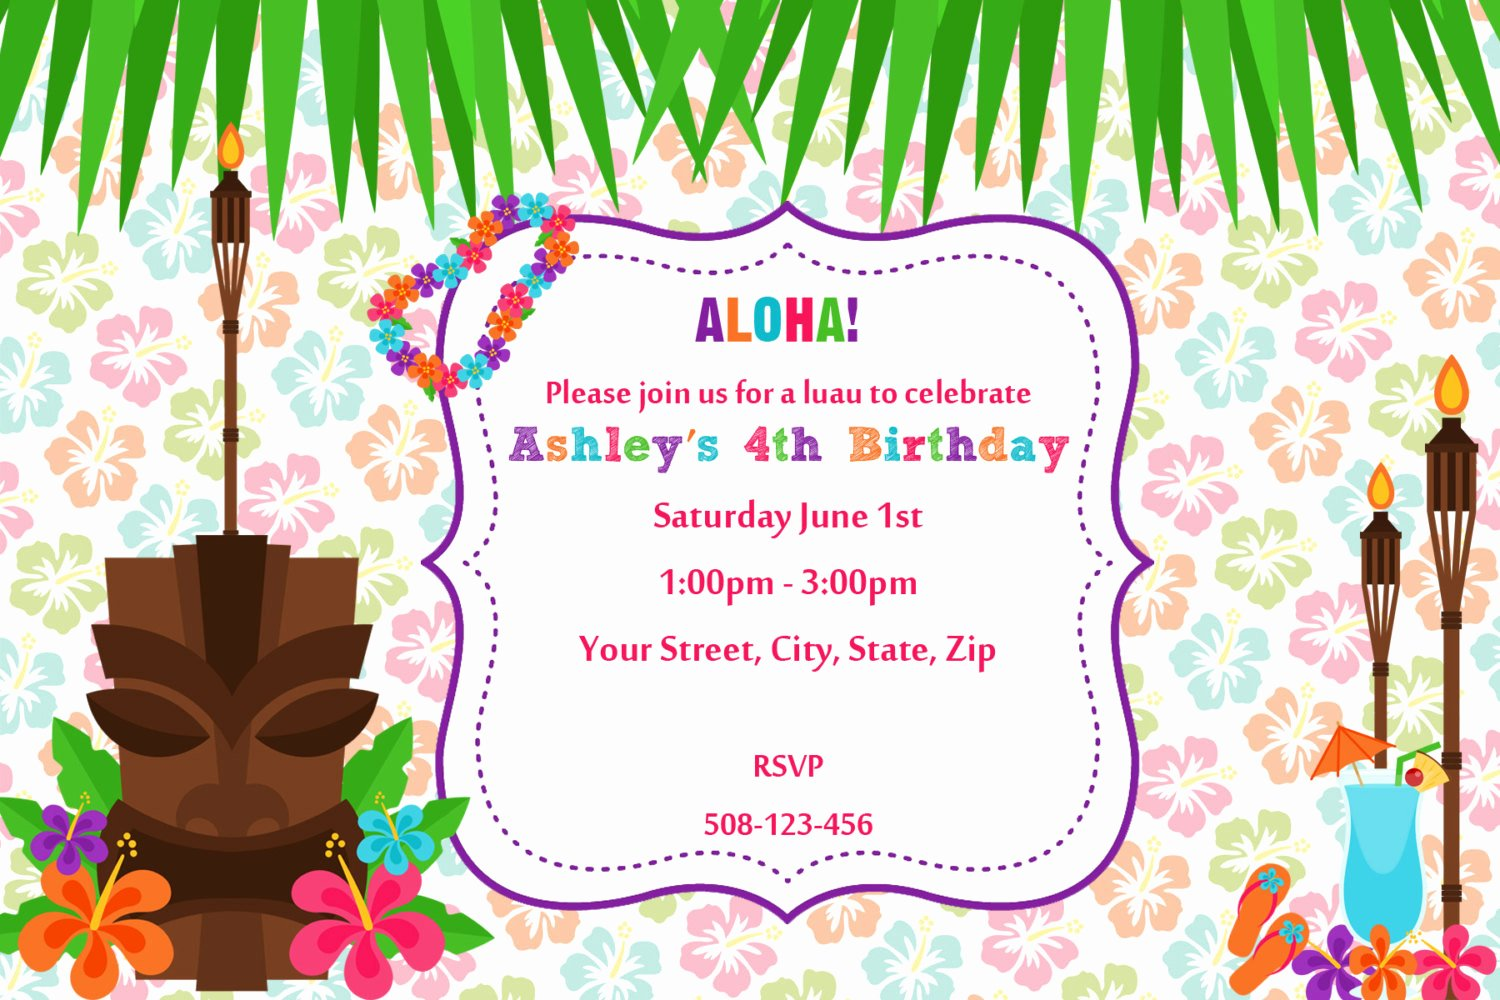 Hawaiian Party Invitation Template Lovely 20 Luau Birthday Invitations Designs